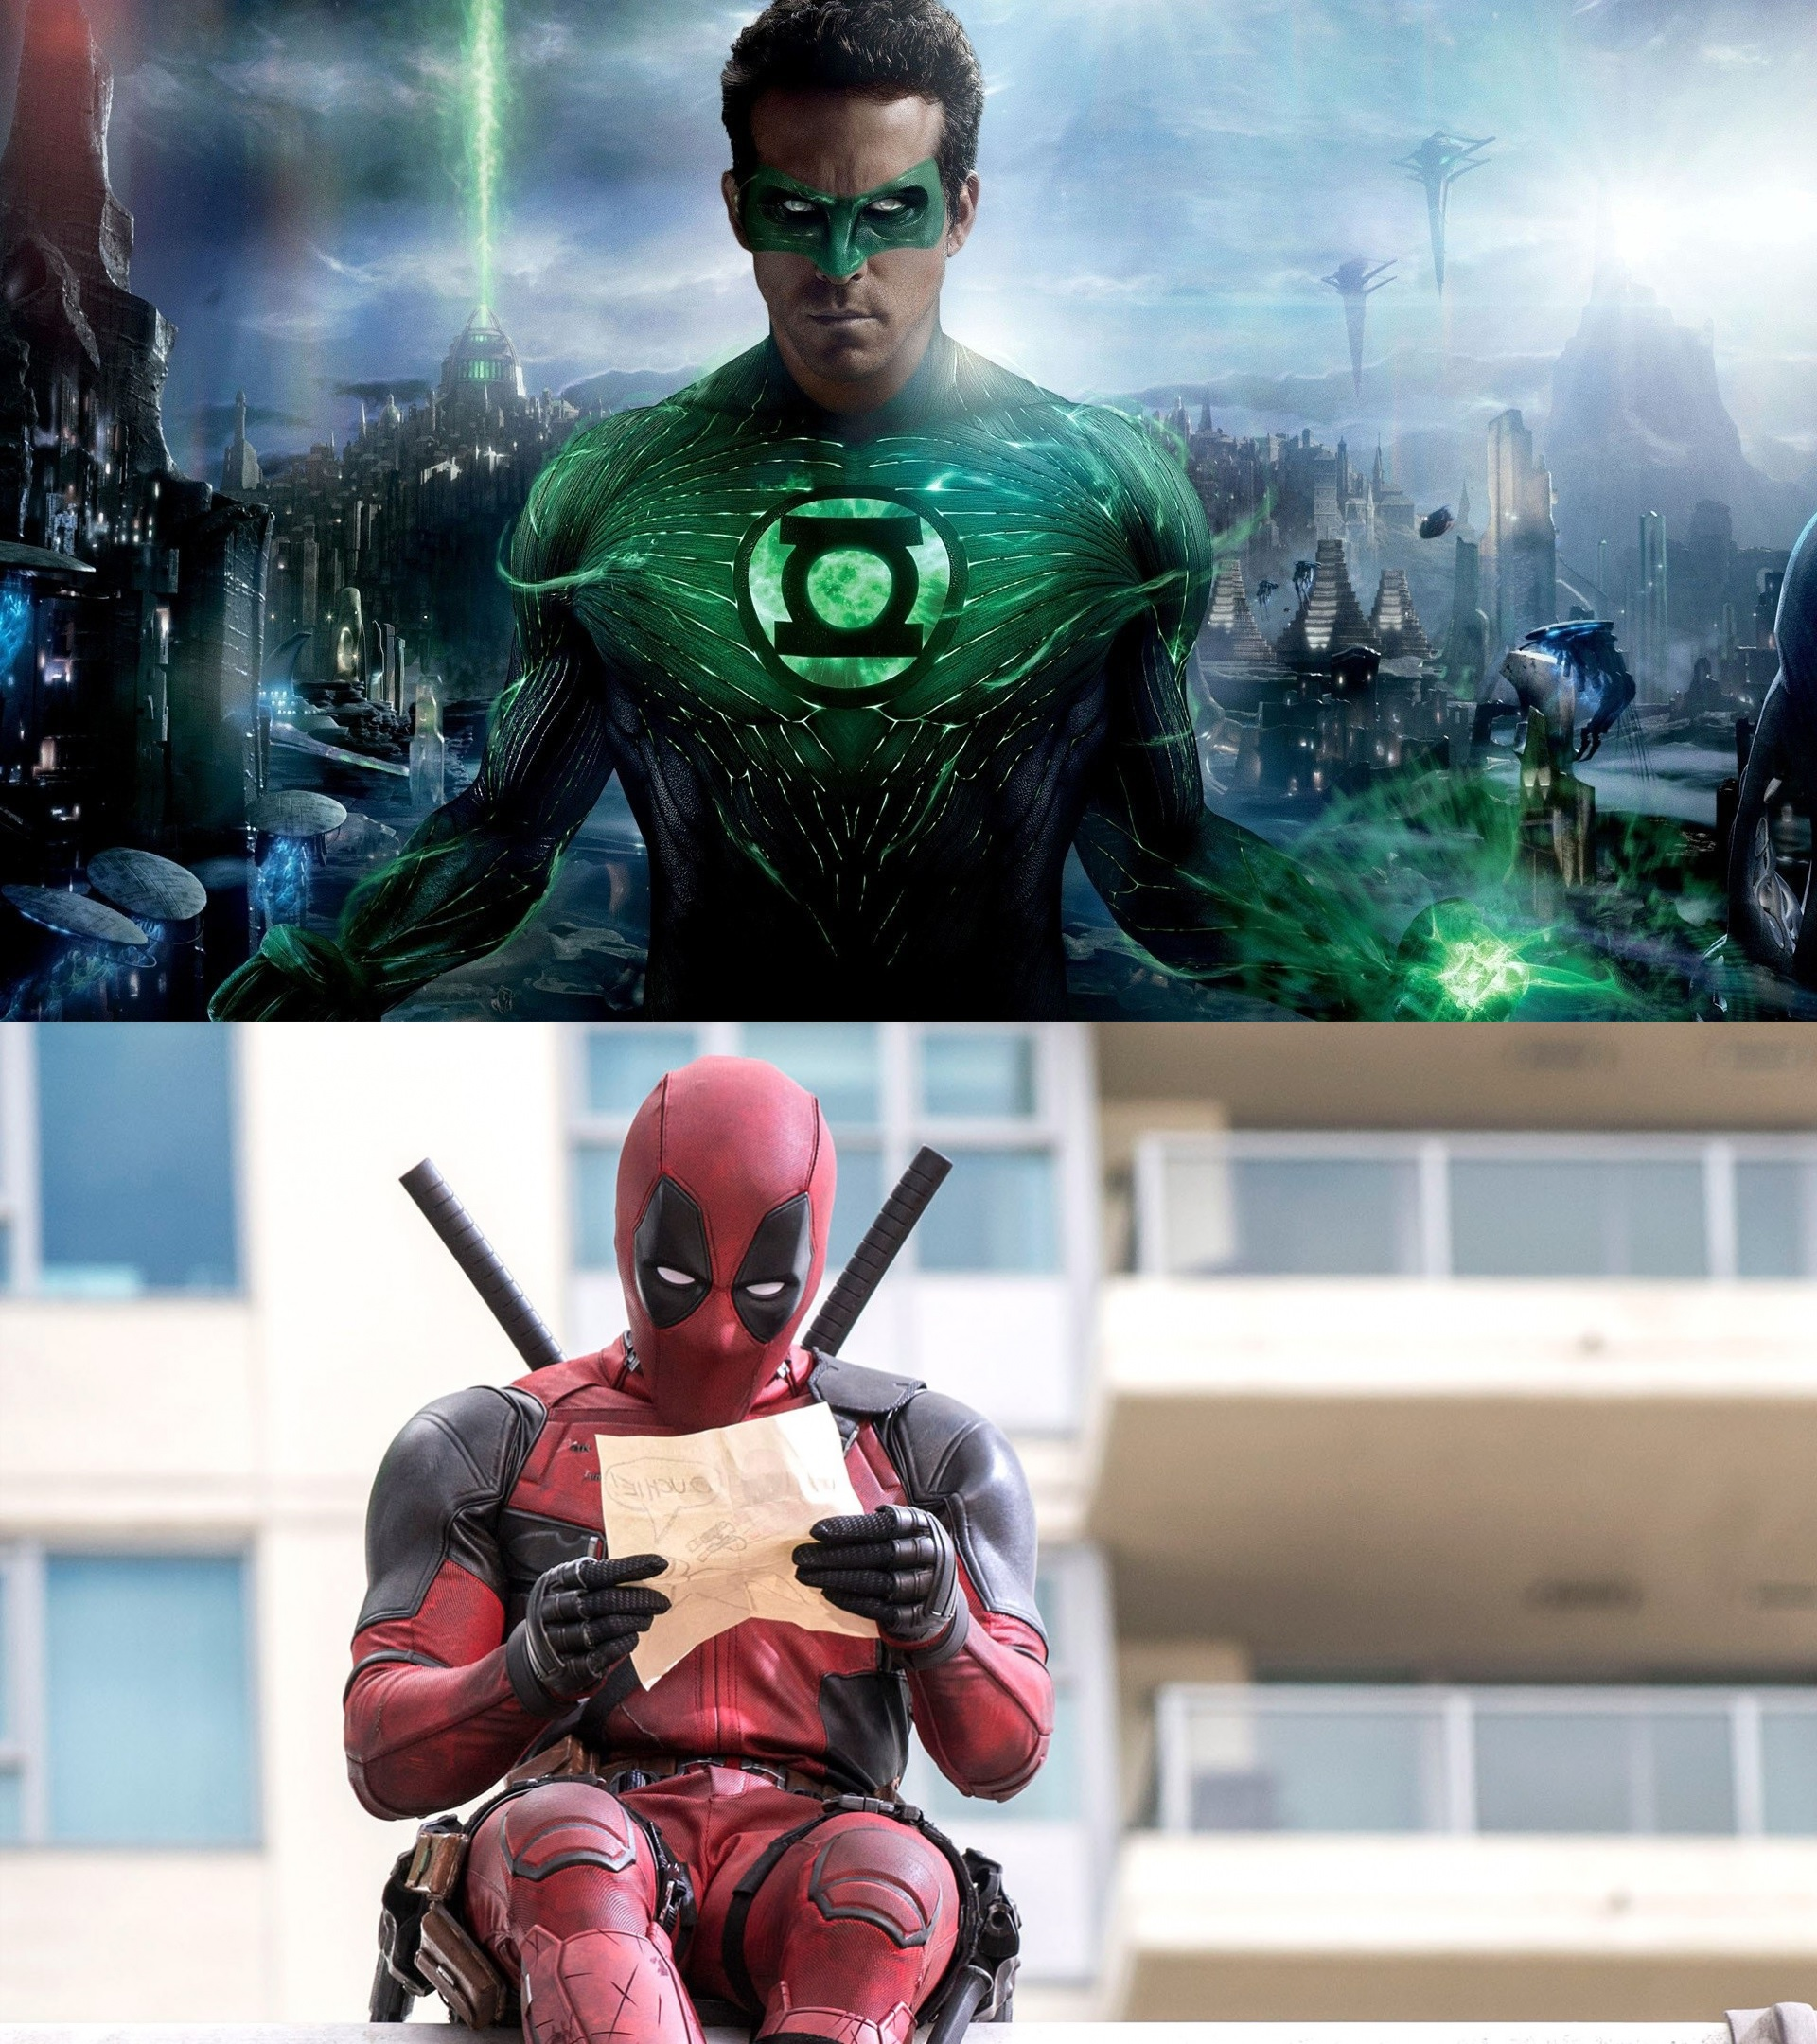 Ryan Reynolds as Green Lantern and Deadpool - Actors who have played more than one superhero